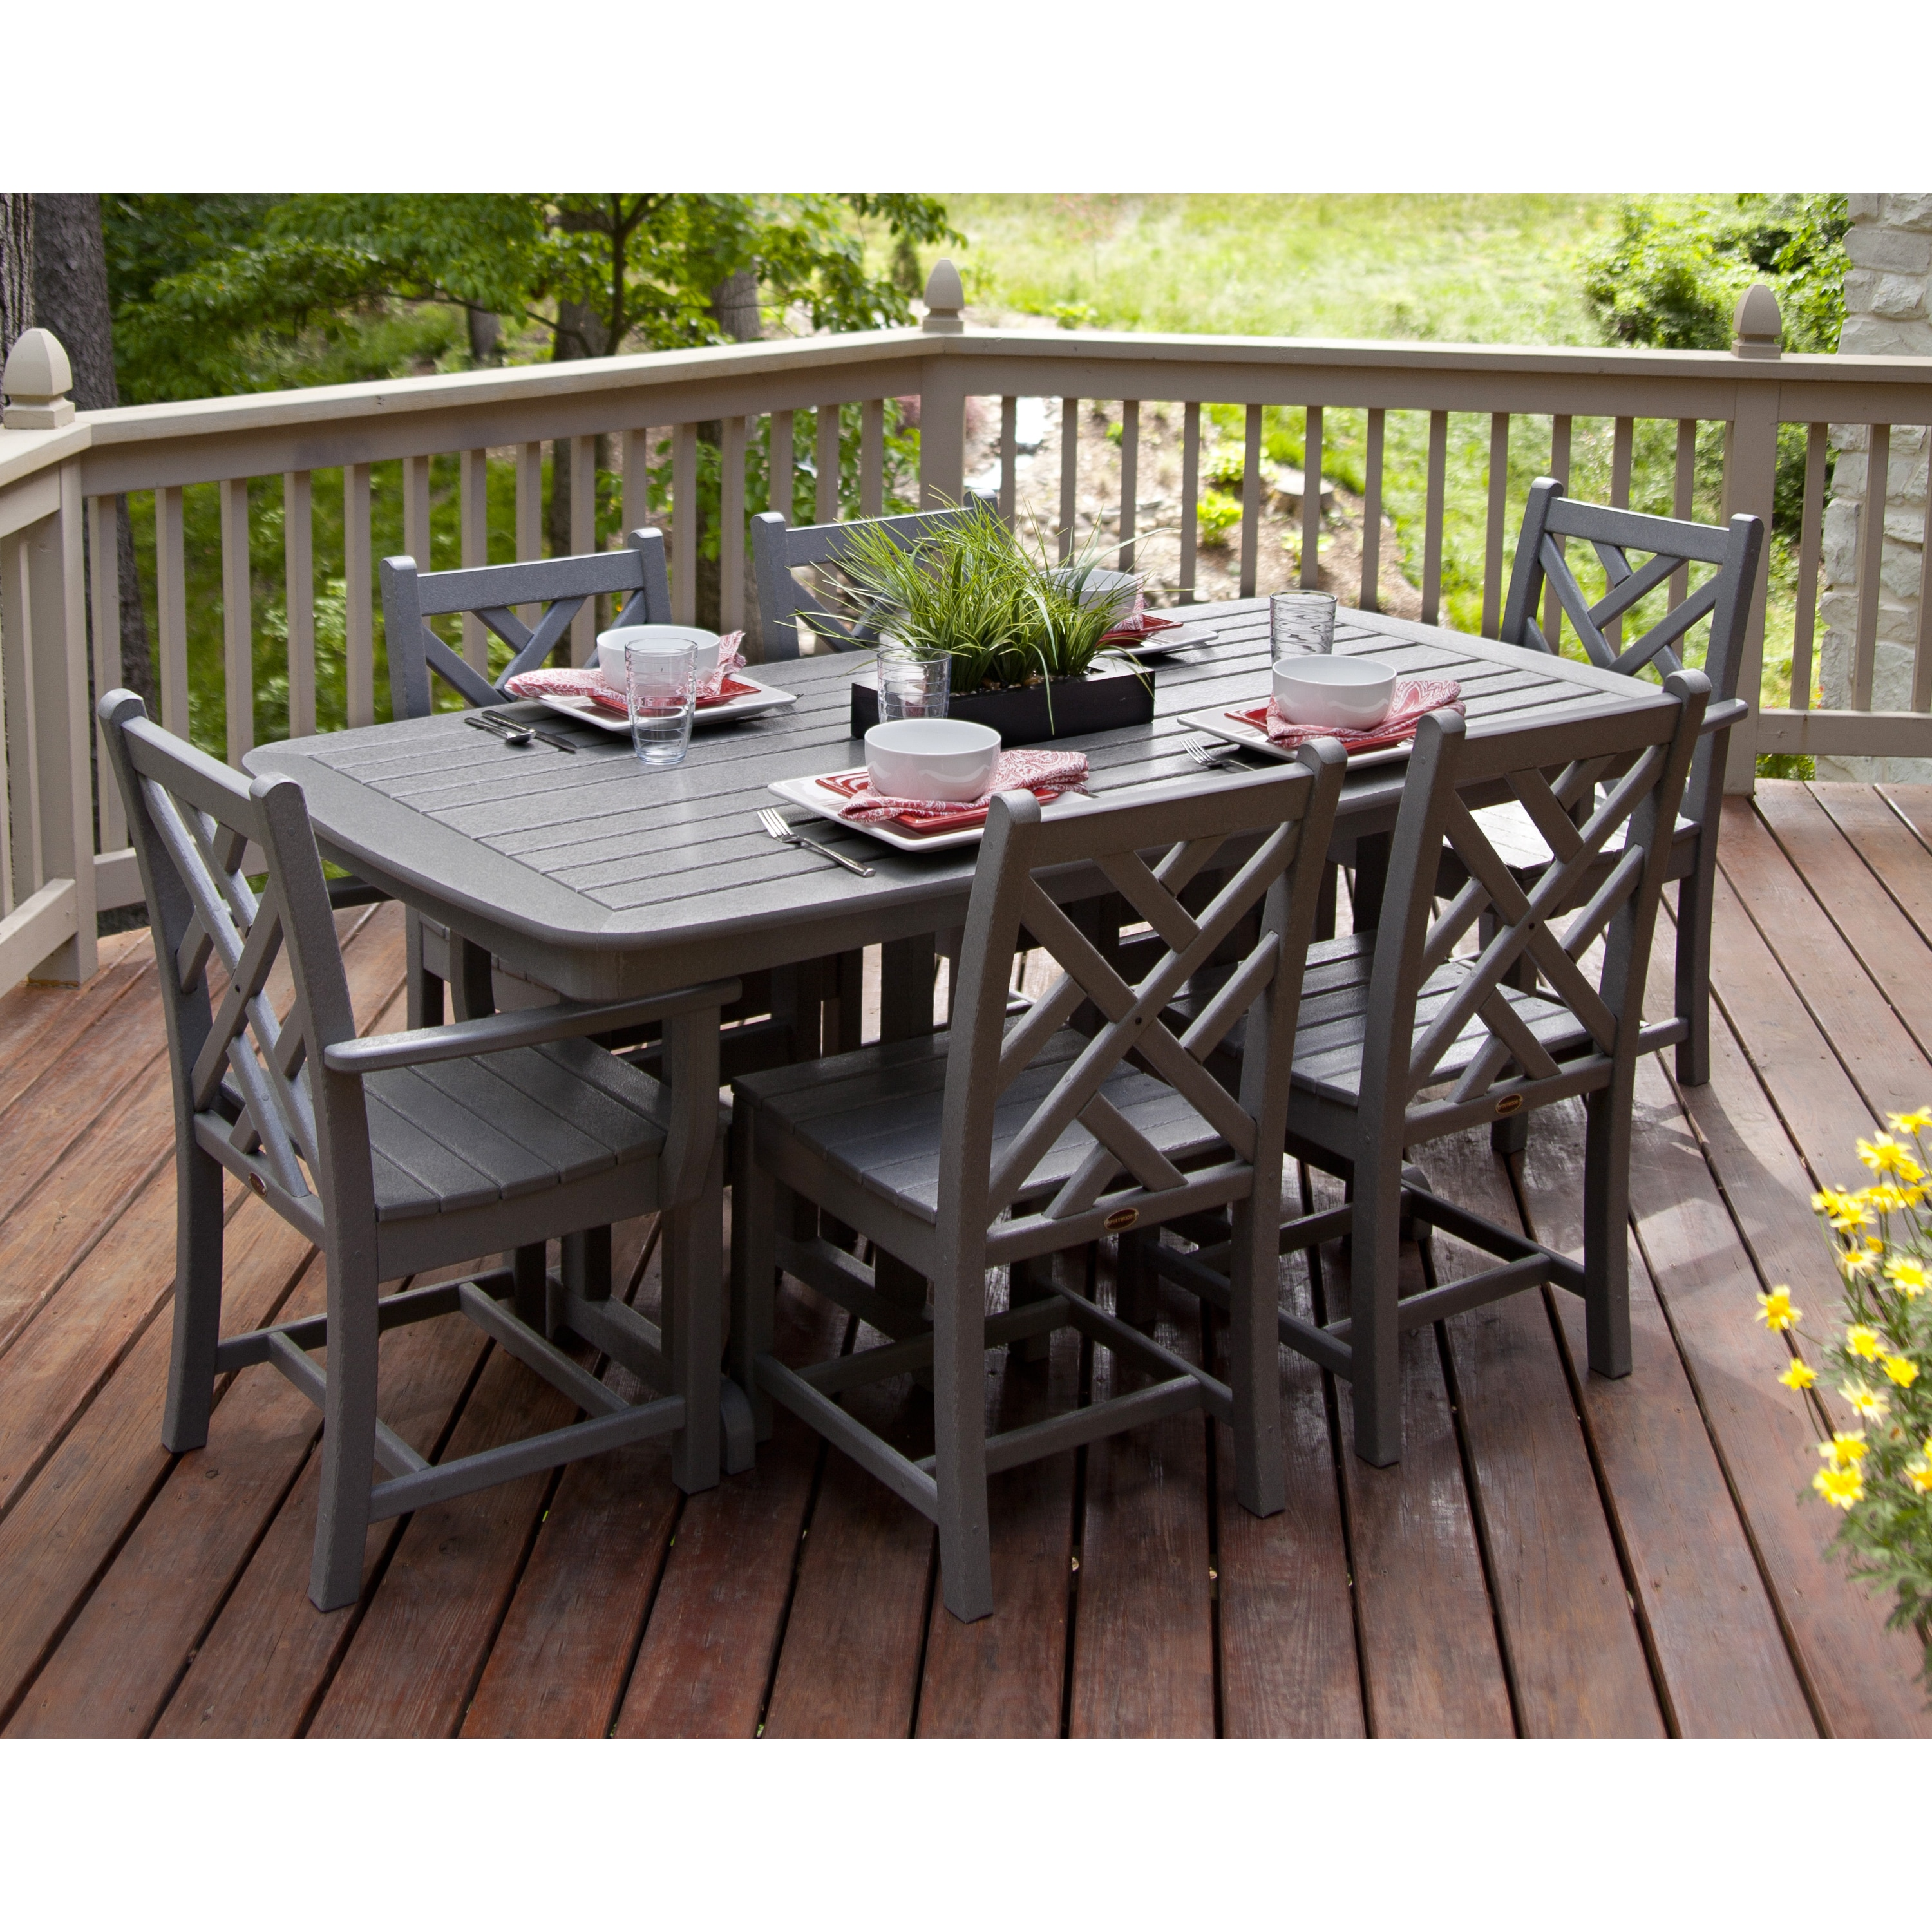 Chippendale 7 Piece Outdoor Dining Set